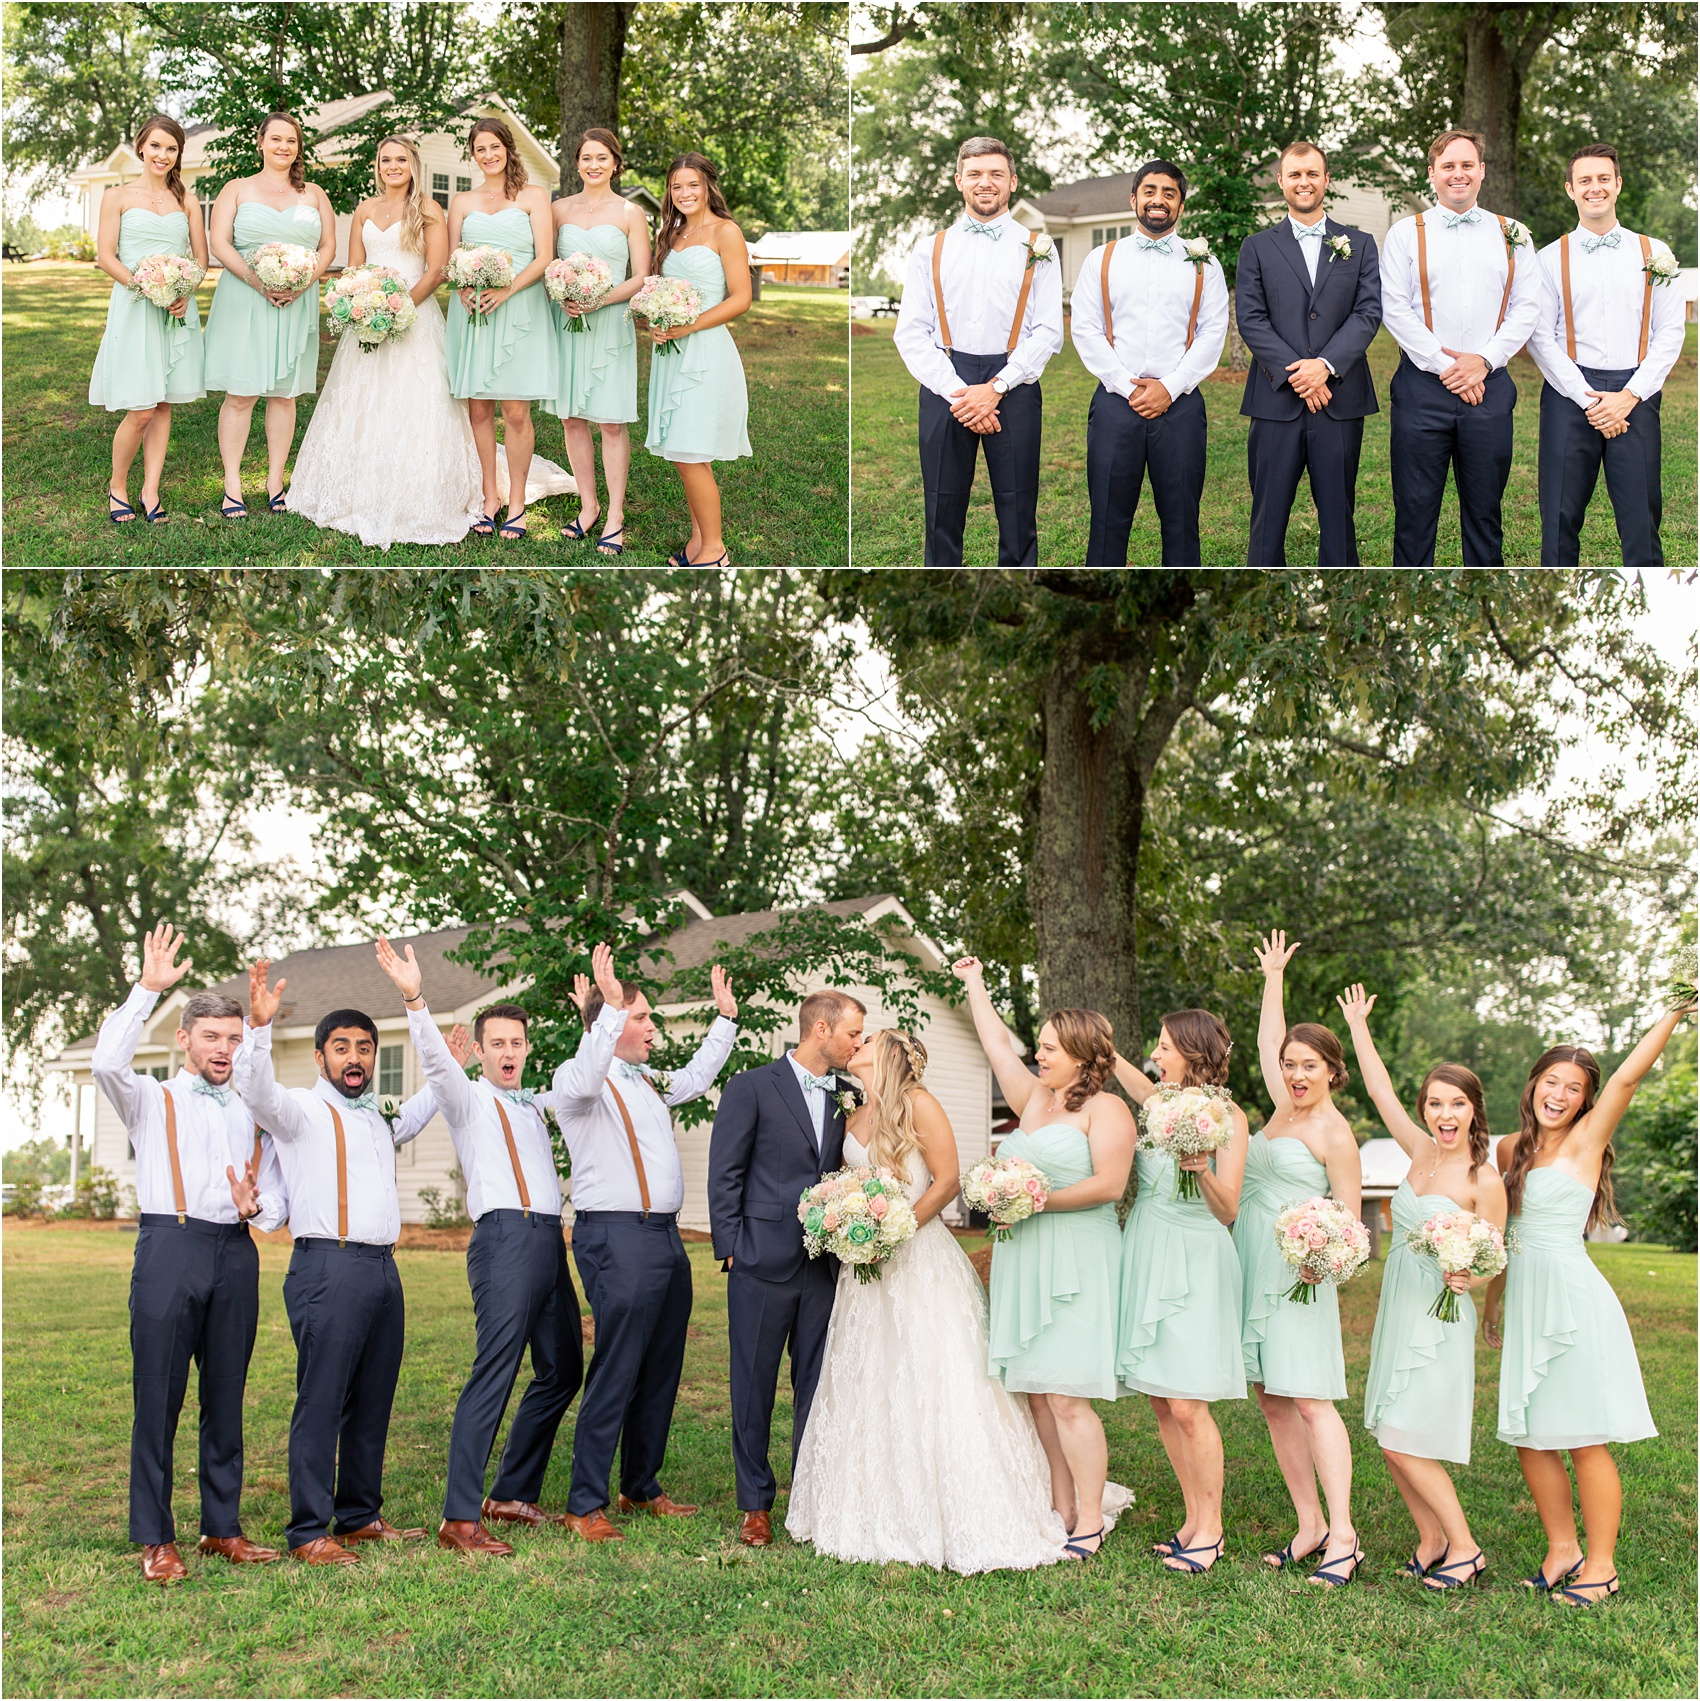 Savannah Eve Photography LLC- Wandolowski-Boyer Wedding-Blog-26.jpg